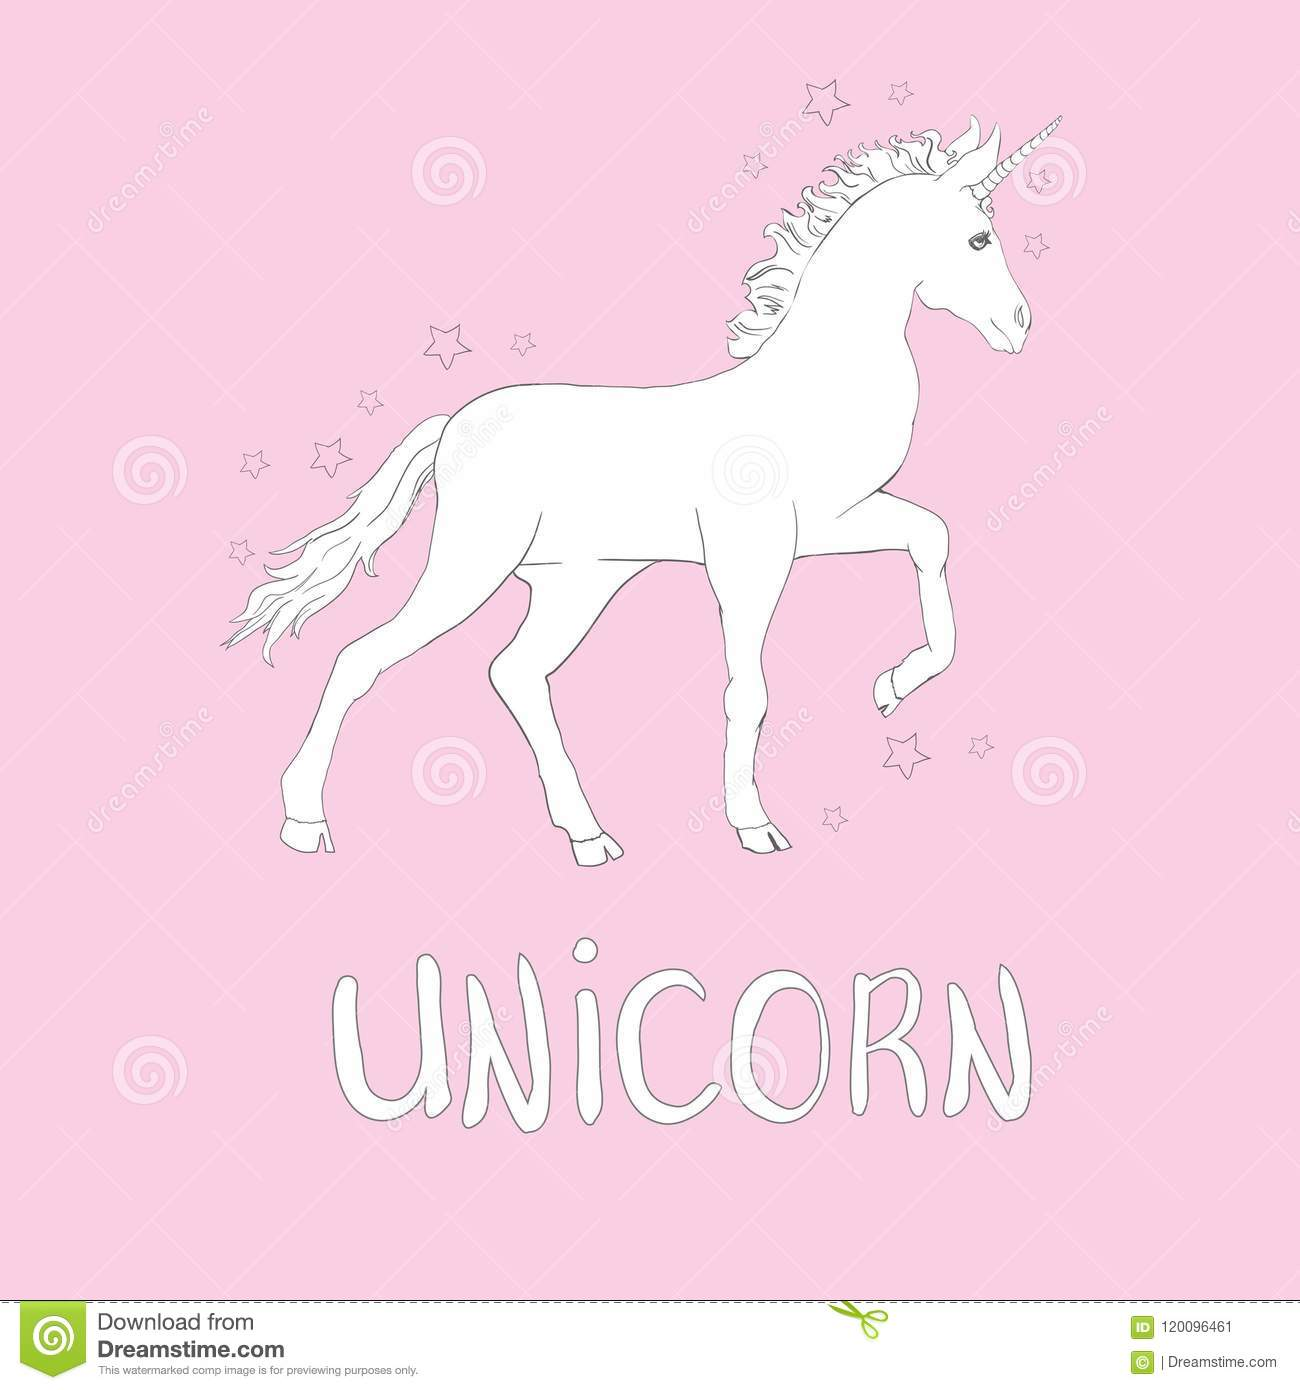 Stock Quotes Free Real Time: Unicorns Are Real Quote, Vector Illustration Drawing. Cute